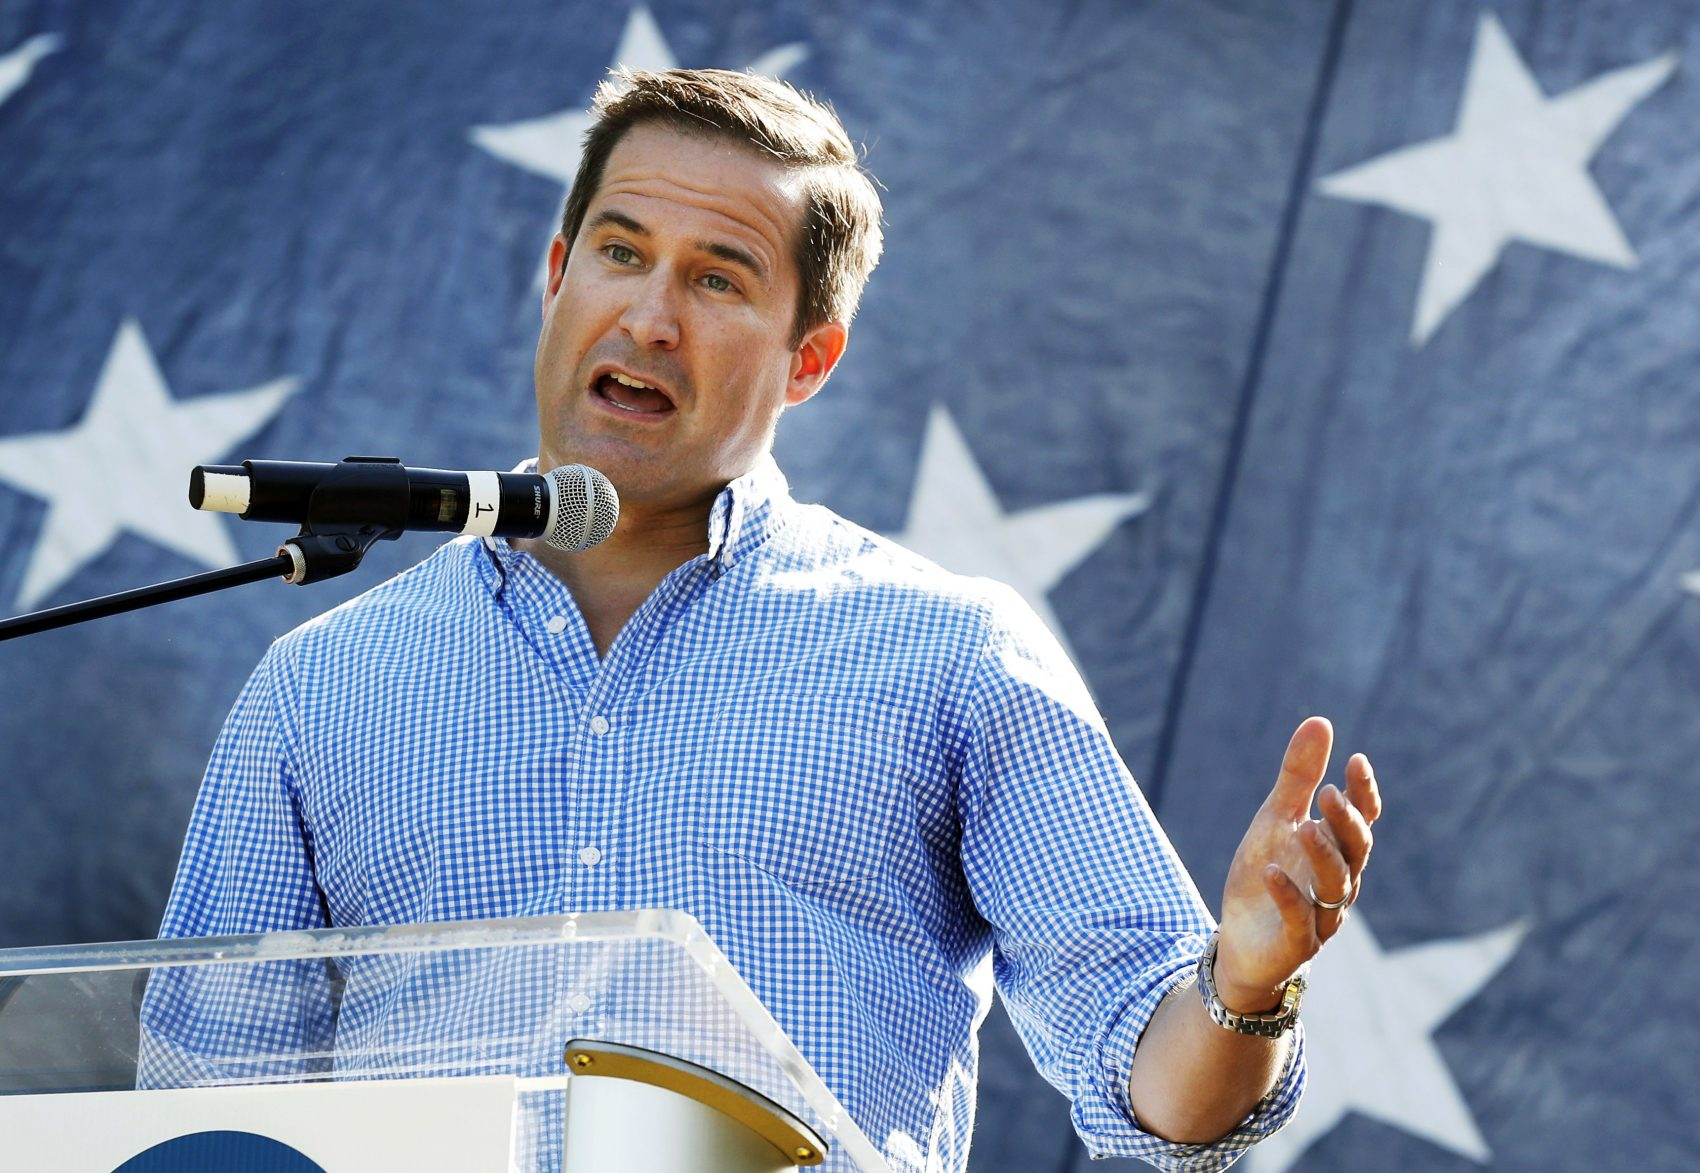 In this Sept. 30, 2017 file photo, U.S. Rep. Seth Moulton, D-Mass., speaks during the Polk County Democrats Steak Fry in Des Moines, Iowa. (Charlie Neibergall/AP)